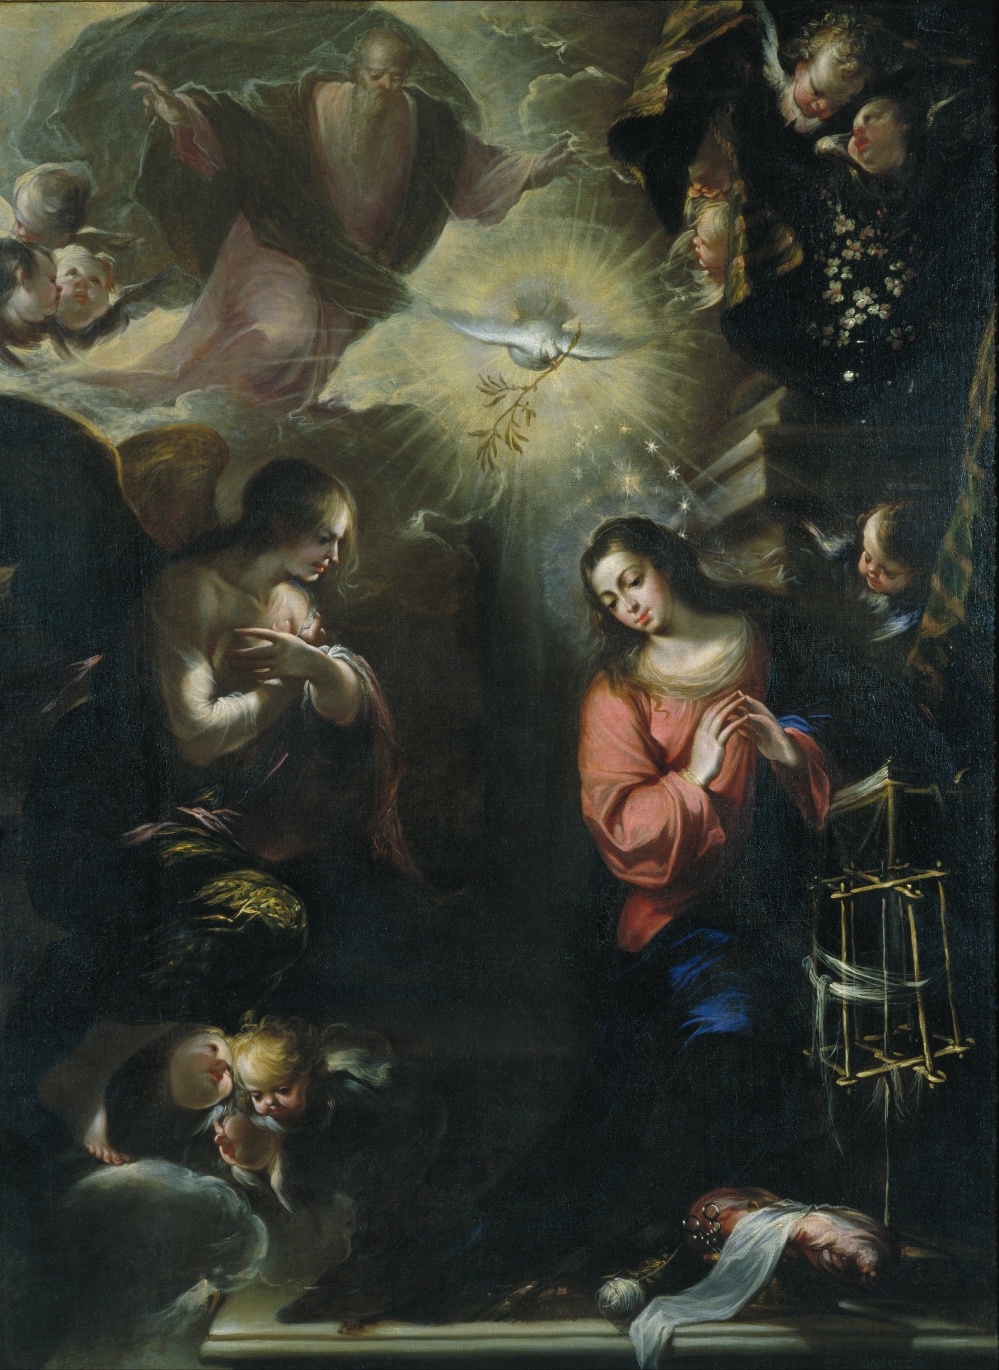 Francisco_de_Solís_-_Annunciation_-_Google_Art_Project.jpg